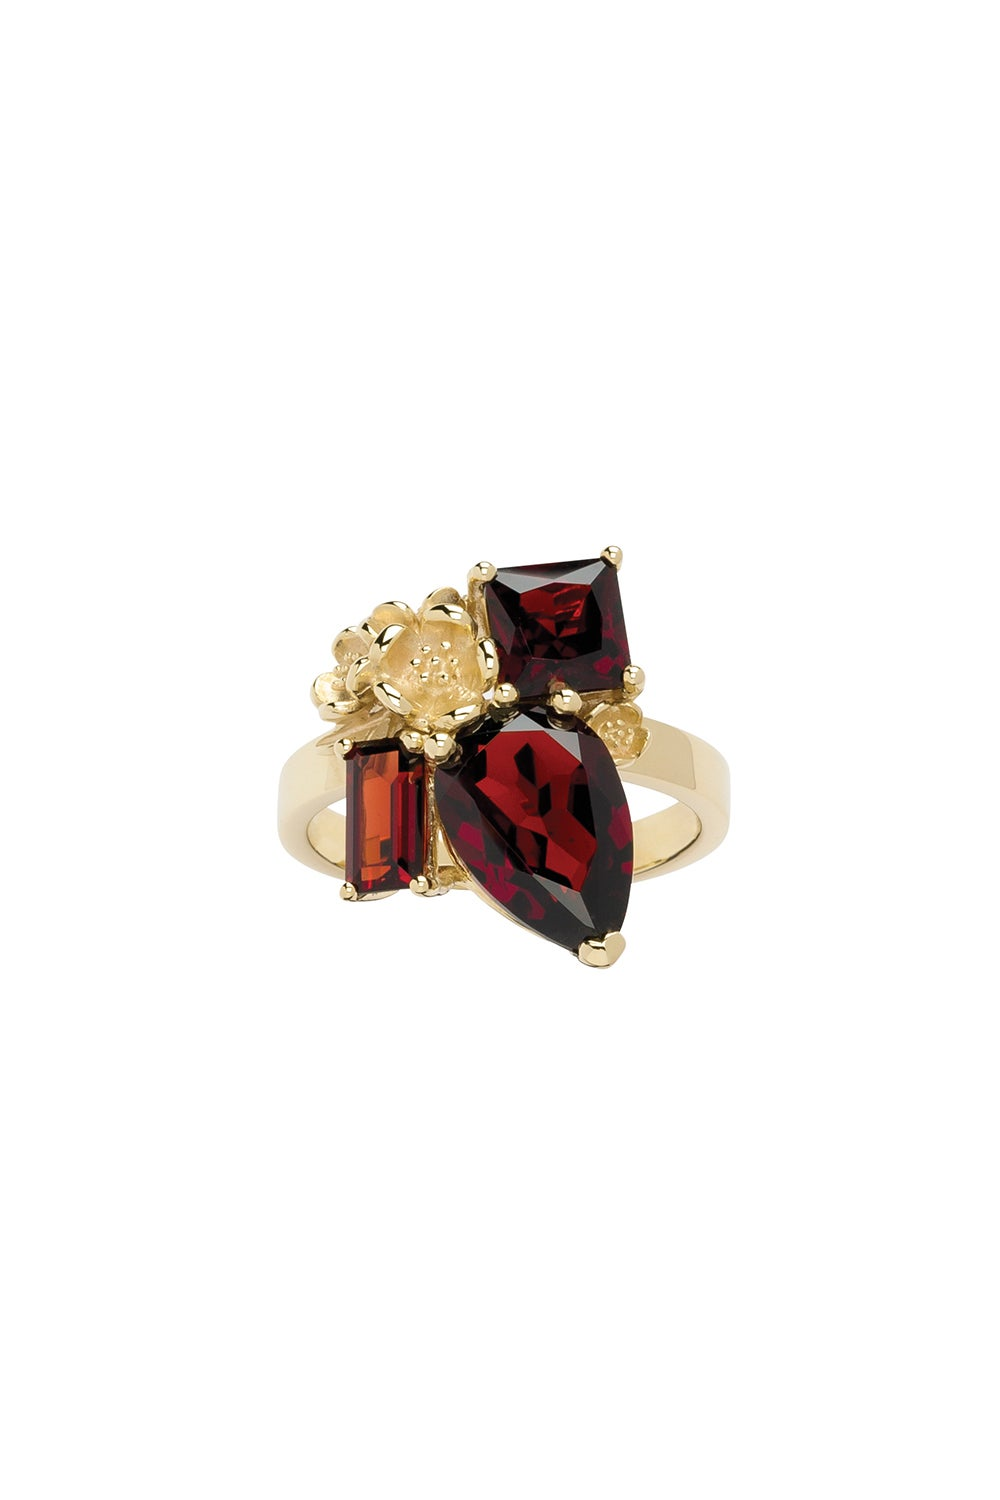 Rock Garden Ring Gold & Garnet